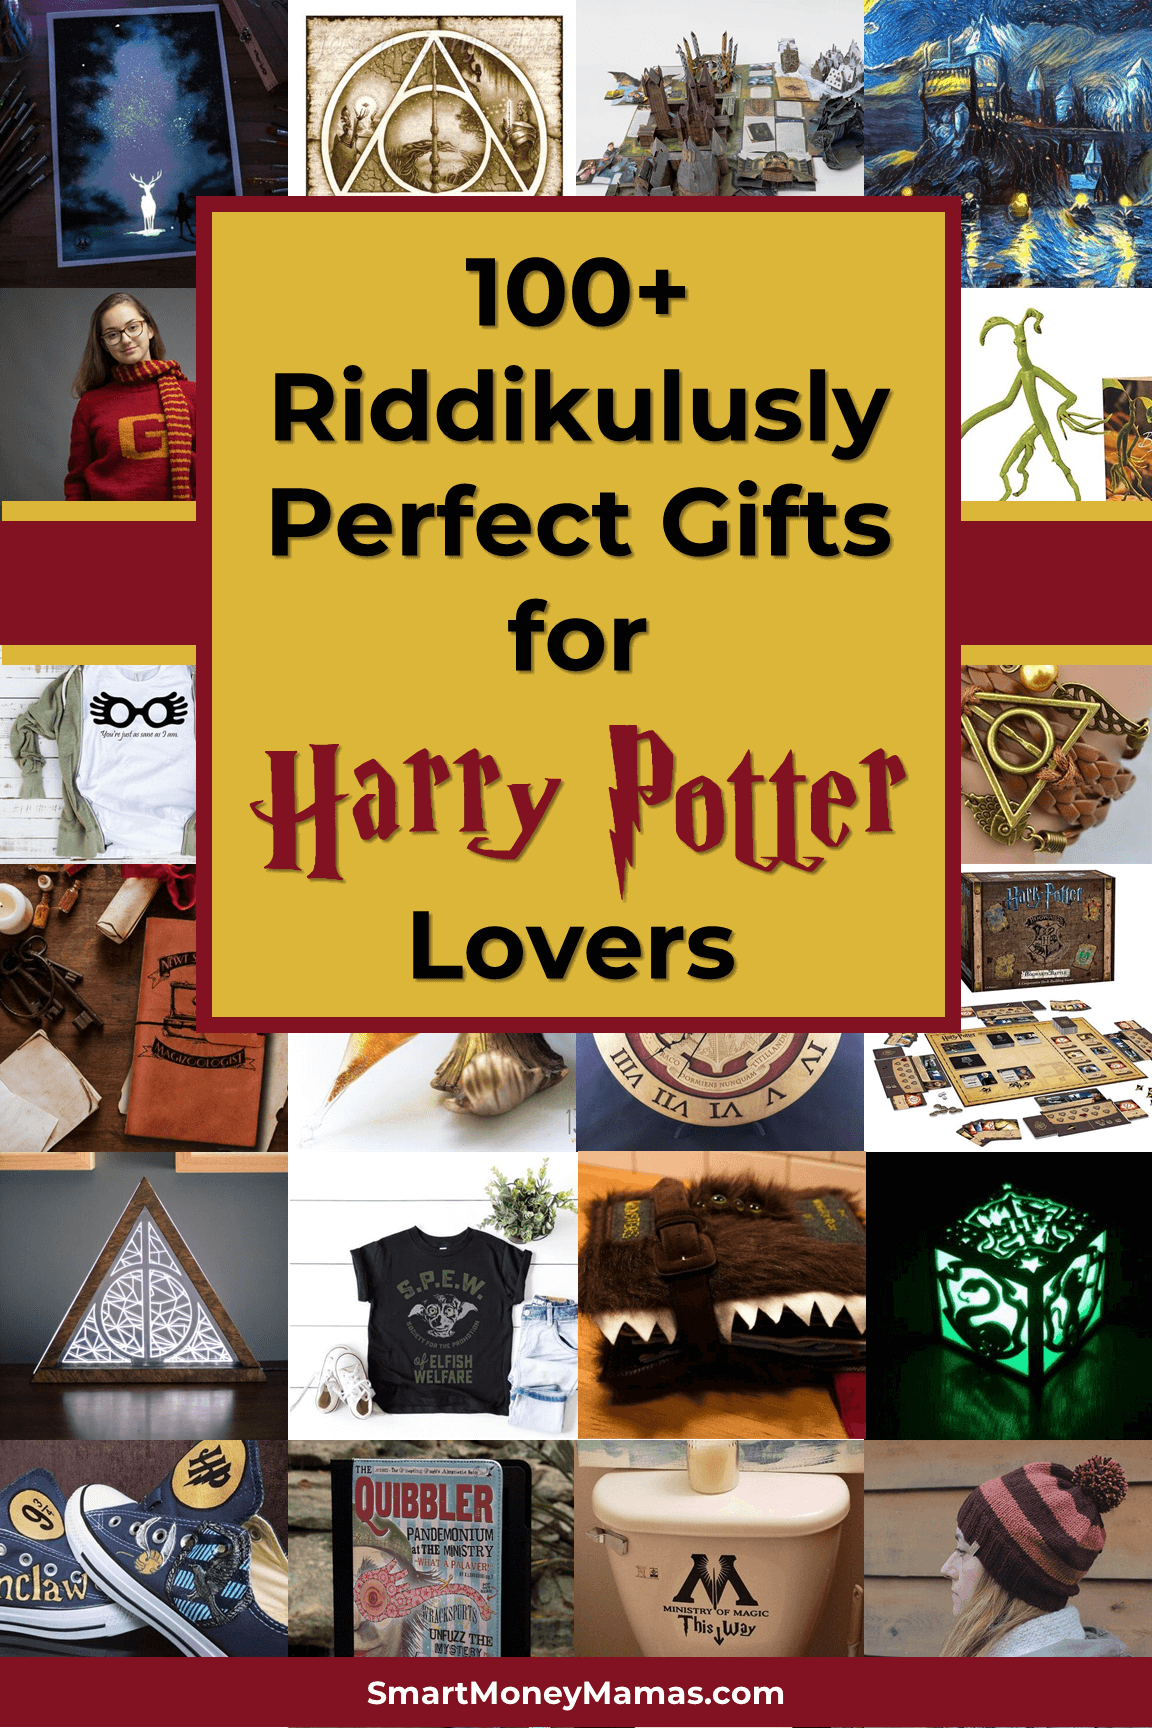 The Ultimate Harry Potter Gift Guide